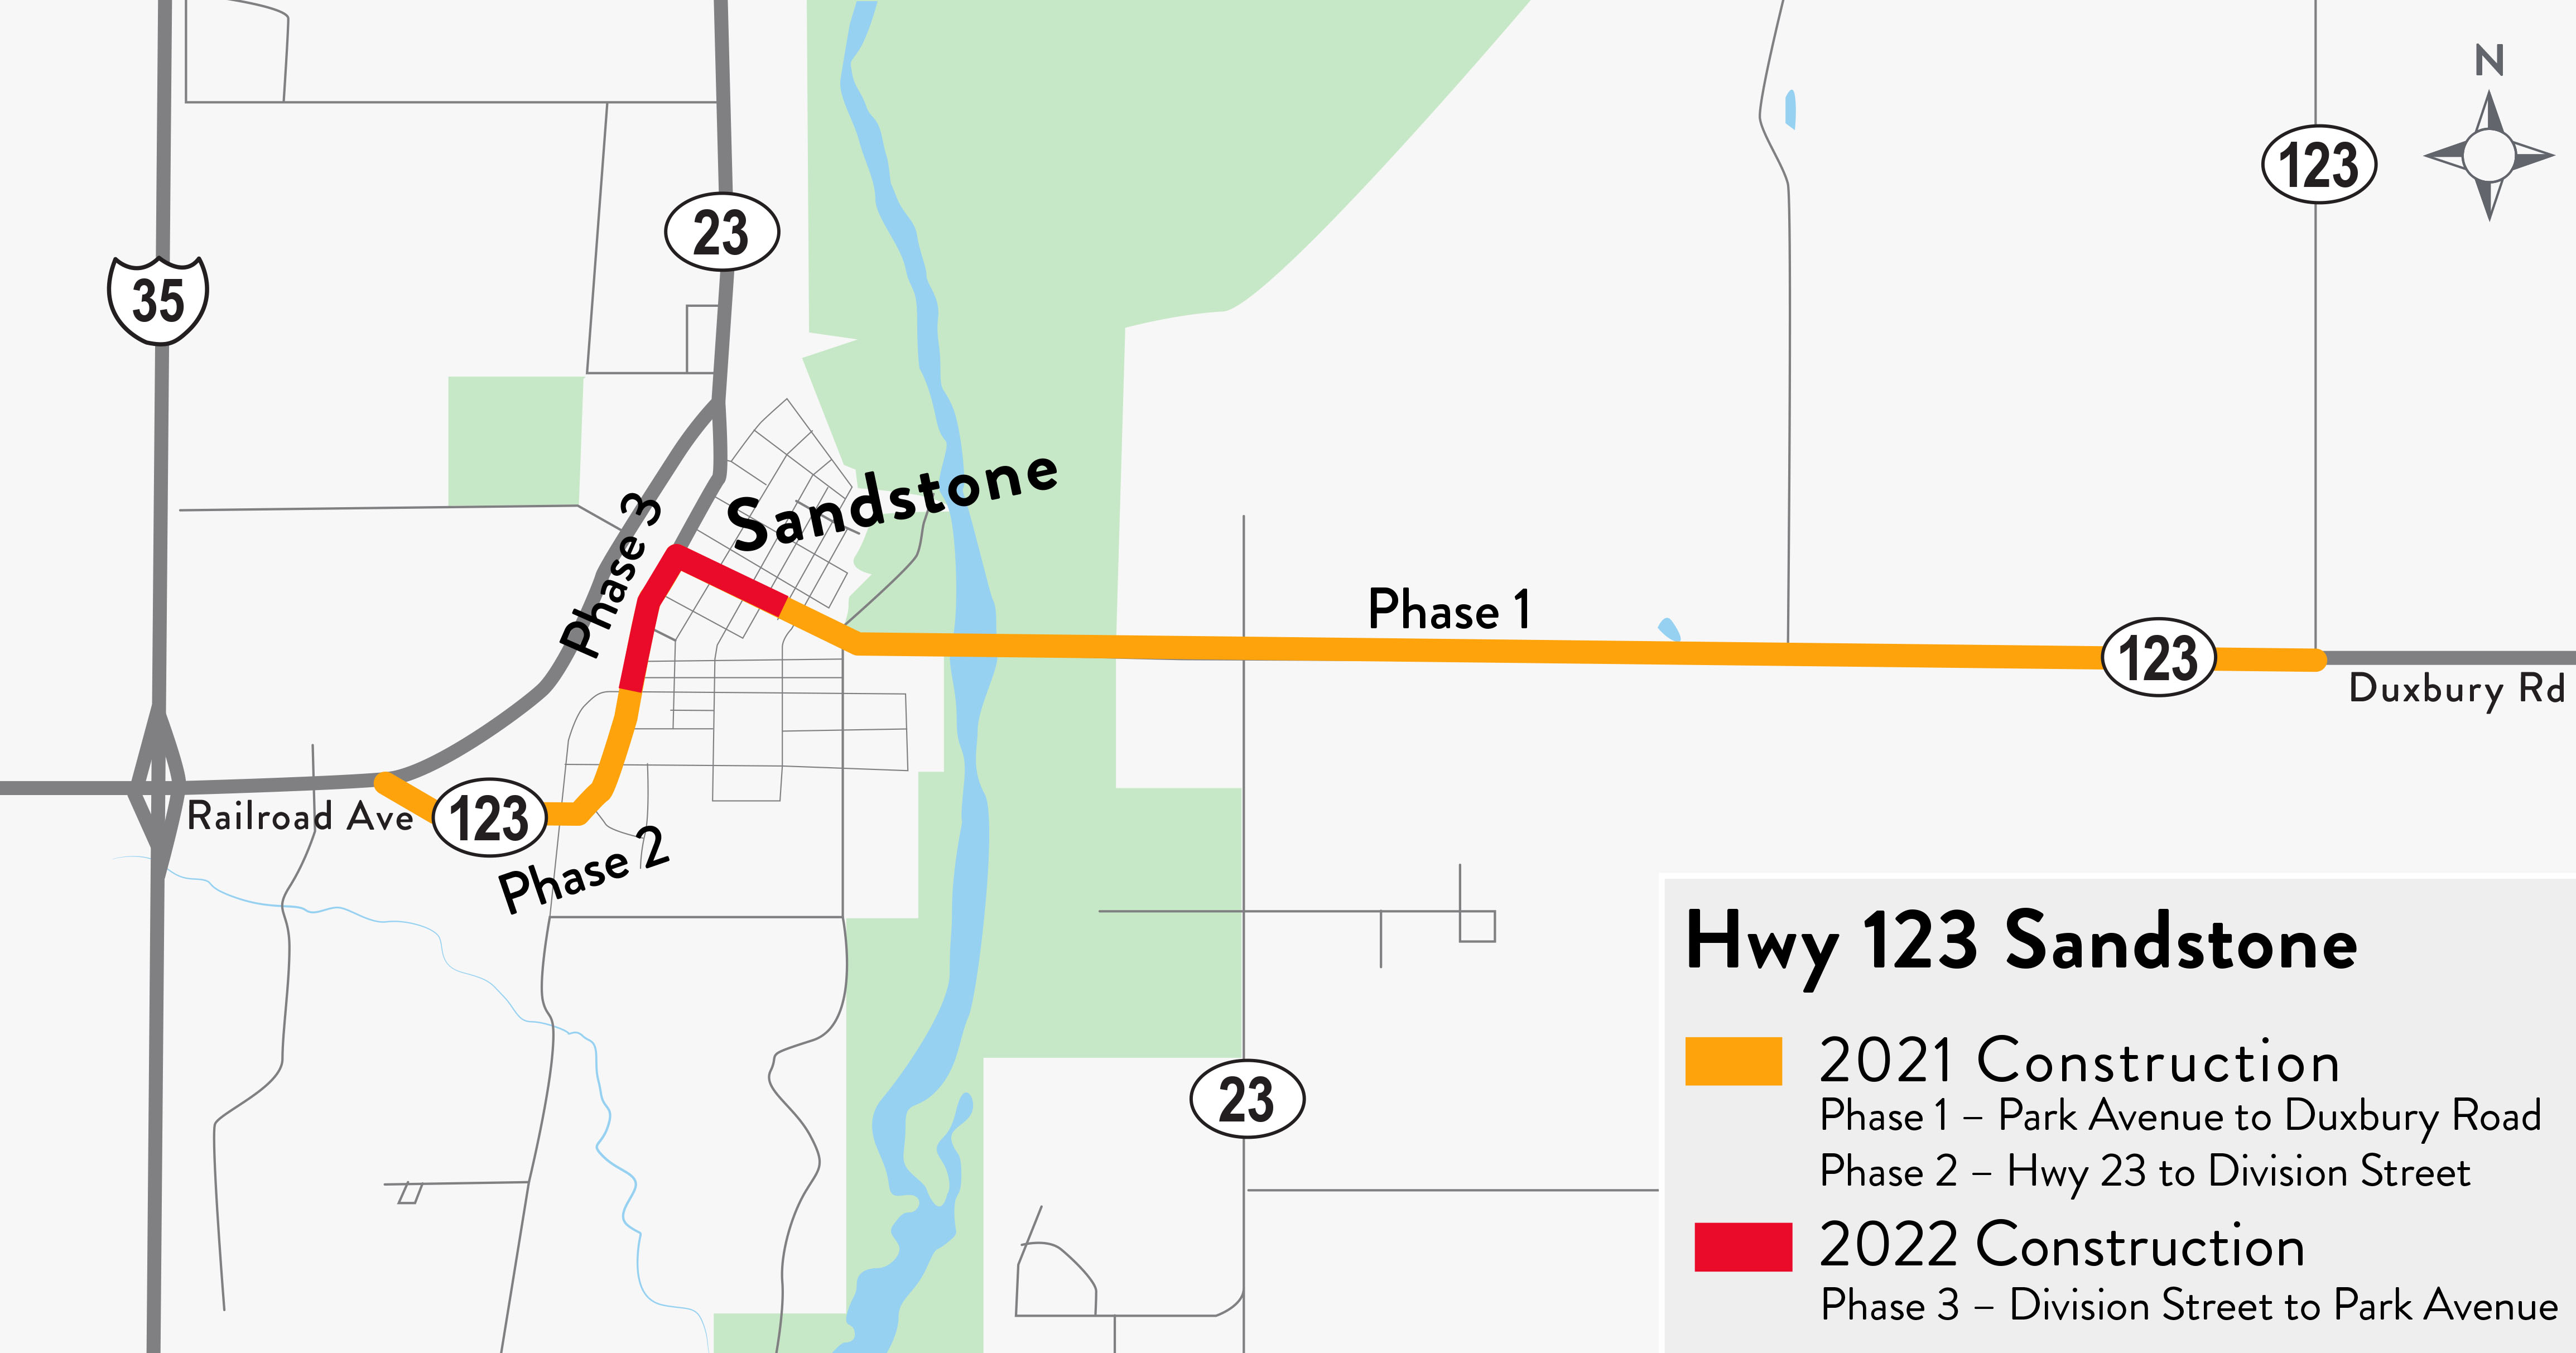 A rendering of the Hwy 123 Sandstone project.